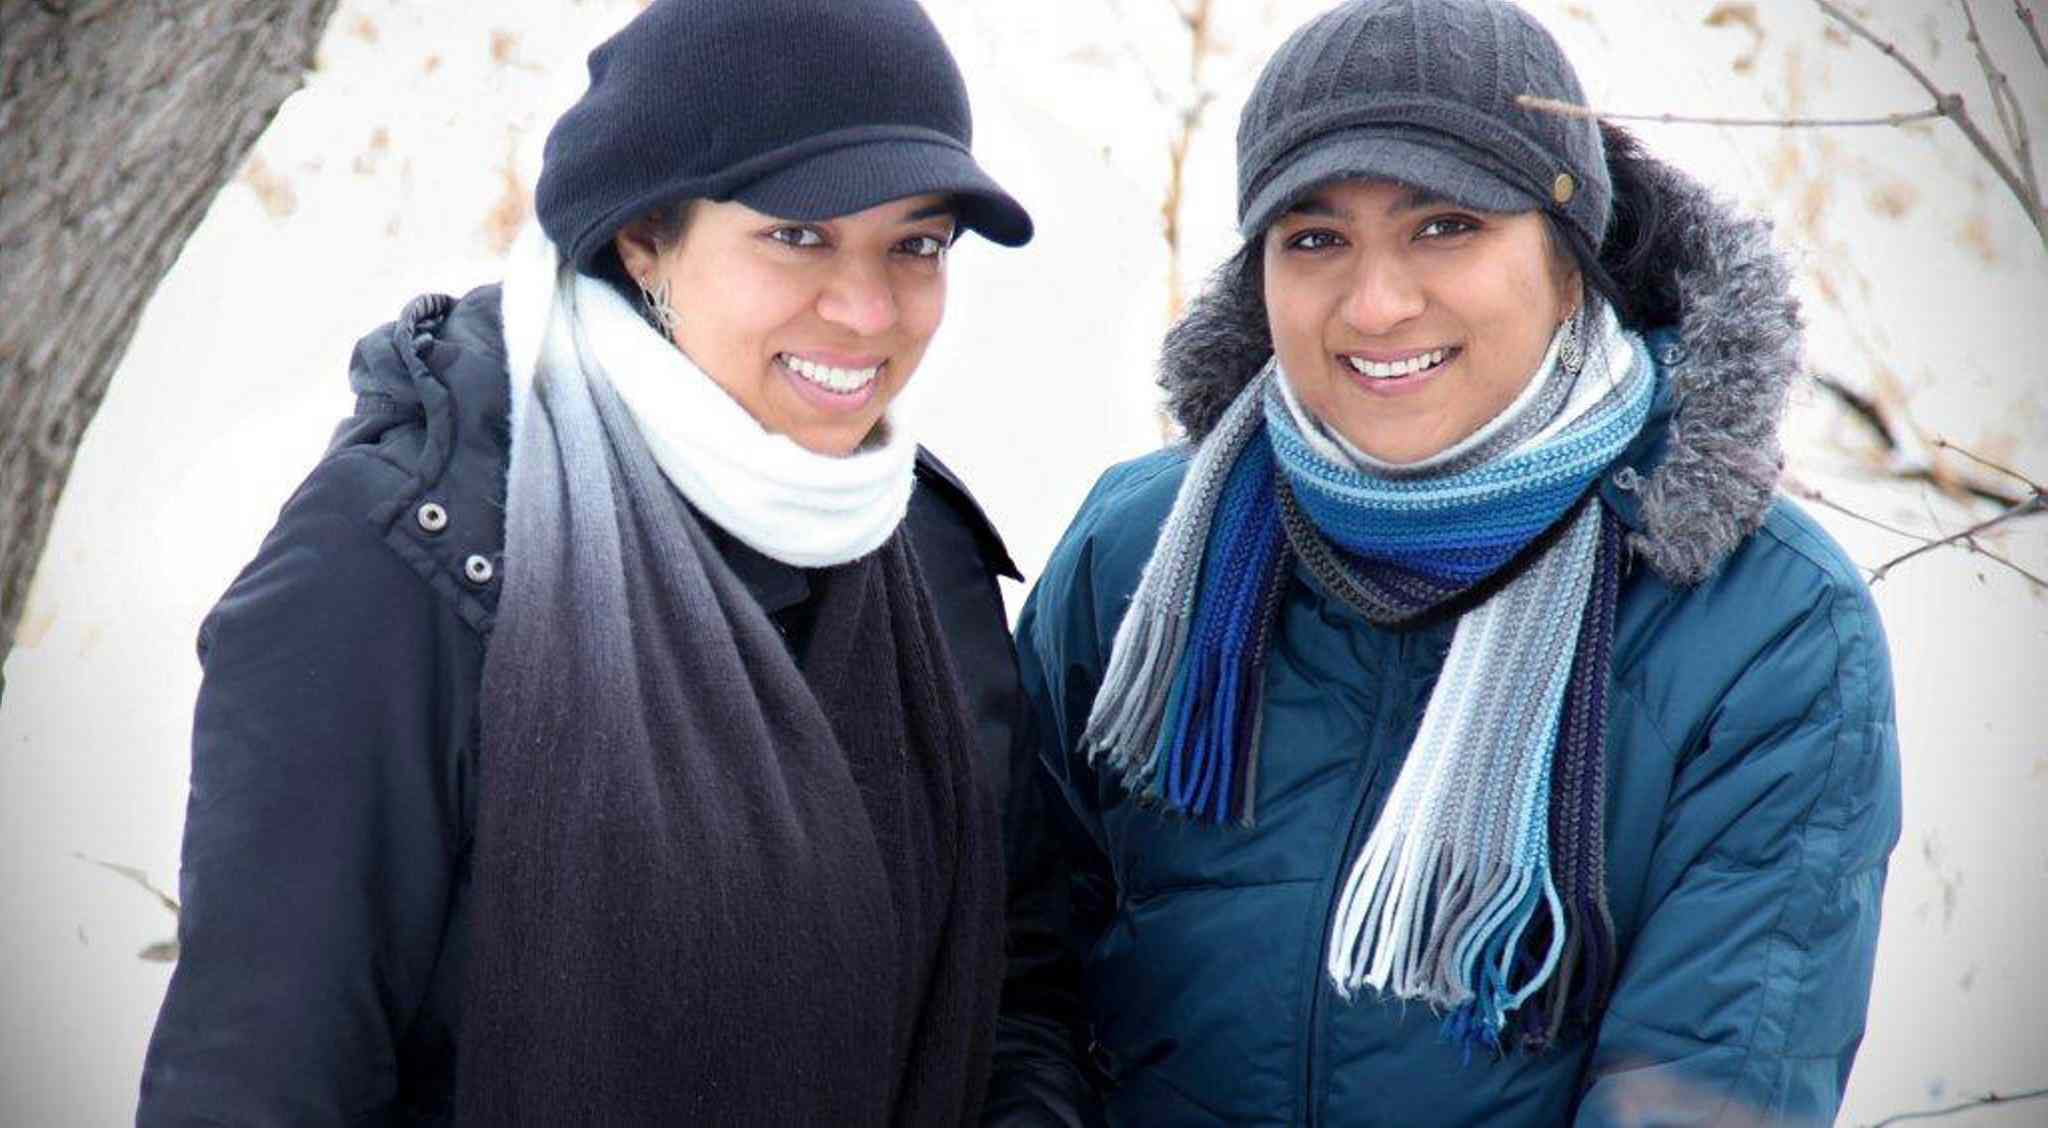 Winnipeg filmmakers Nilufer (left) and Saira Rahman just returned from Sweden and Norway, where they were guests of the Canadian embassies and invited to screen their documentary Arctic Mosque.